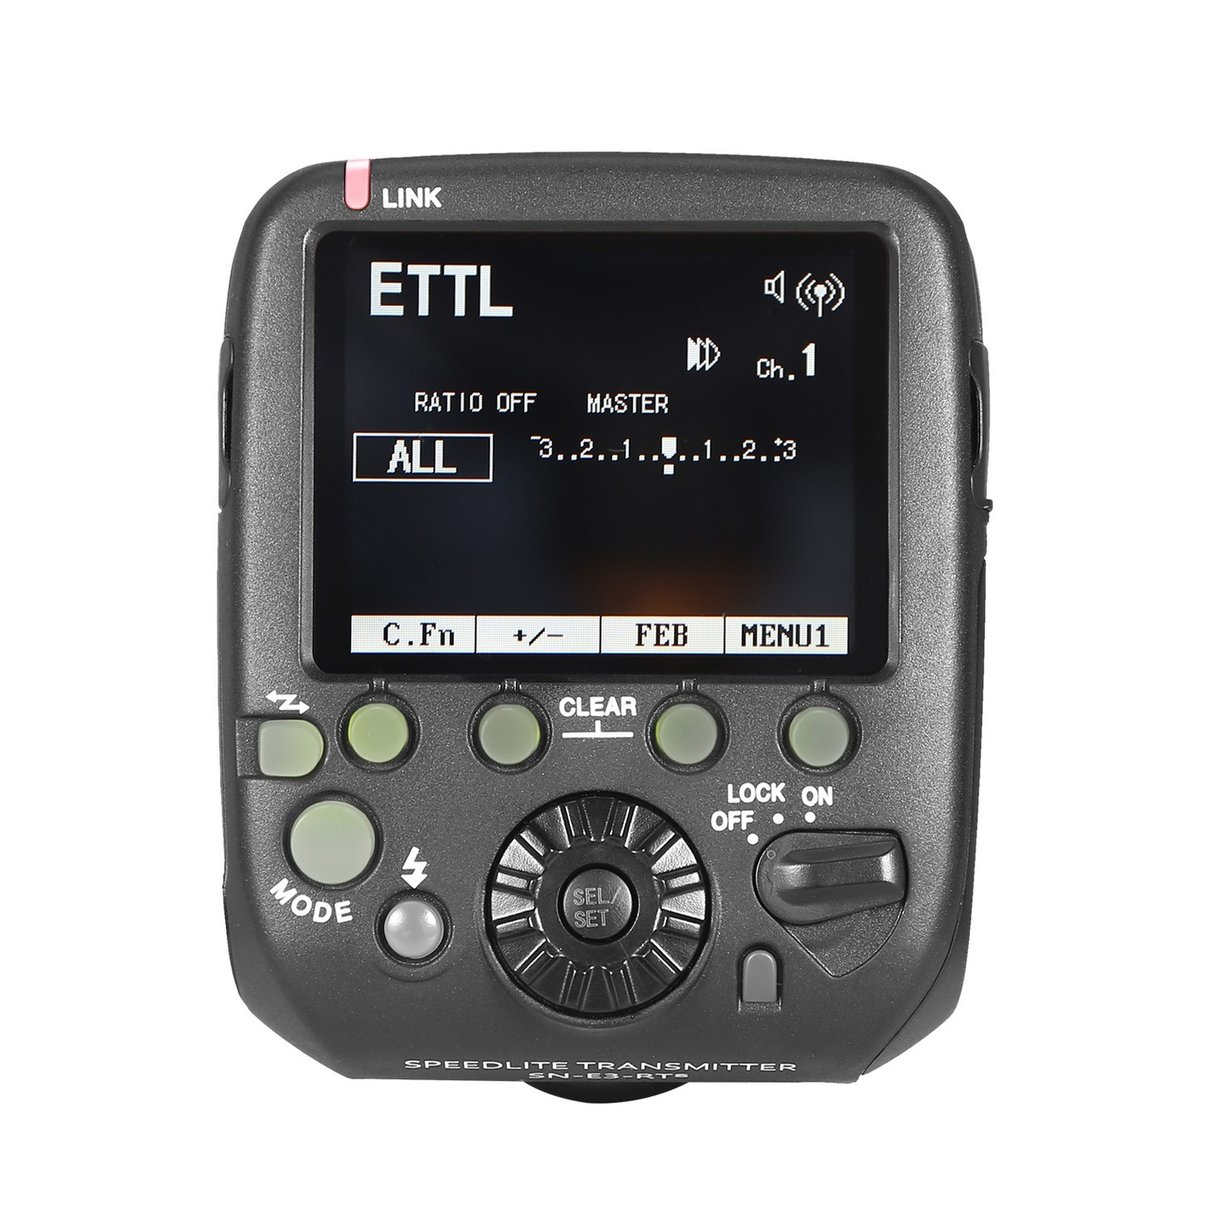 Shanny SN-E3-RTs Transmitter Flash Trigger for Canon 600EX-RT Yongnuo YN600EX-RT AS Yongnuo YN-E3-RT yongnuo yn e3 rt ttl radio trigger speedlite transmitter as st e3 rt for canon 600ex rt yongnuo yn600ex rt